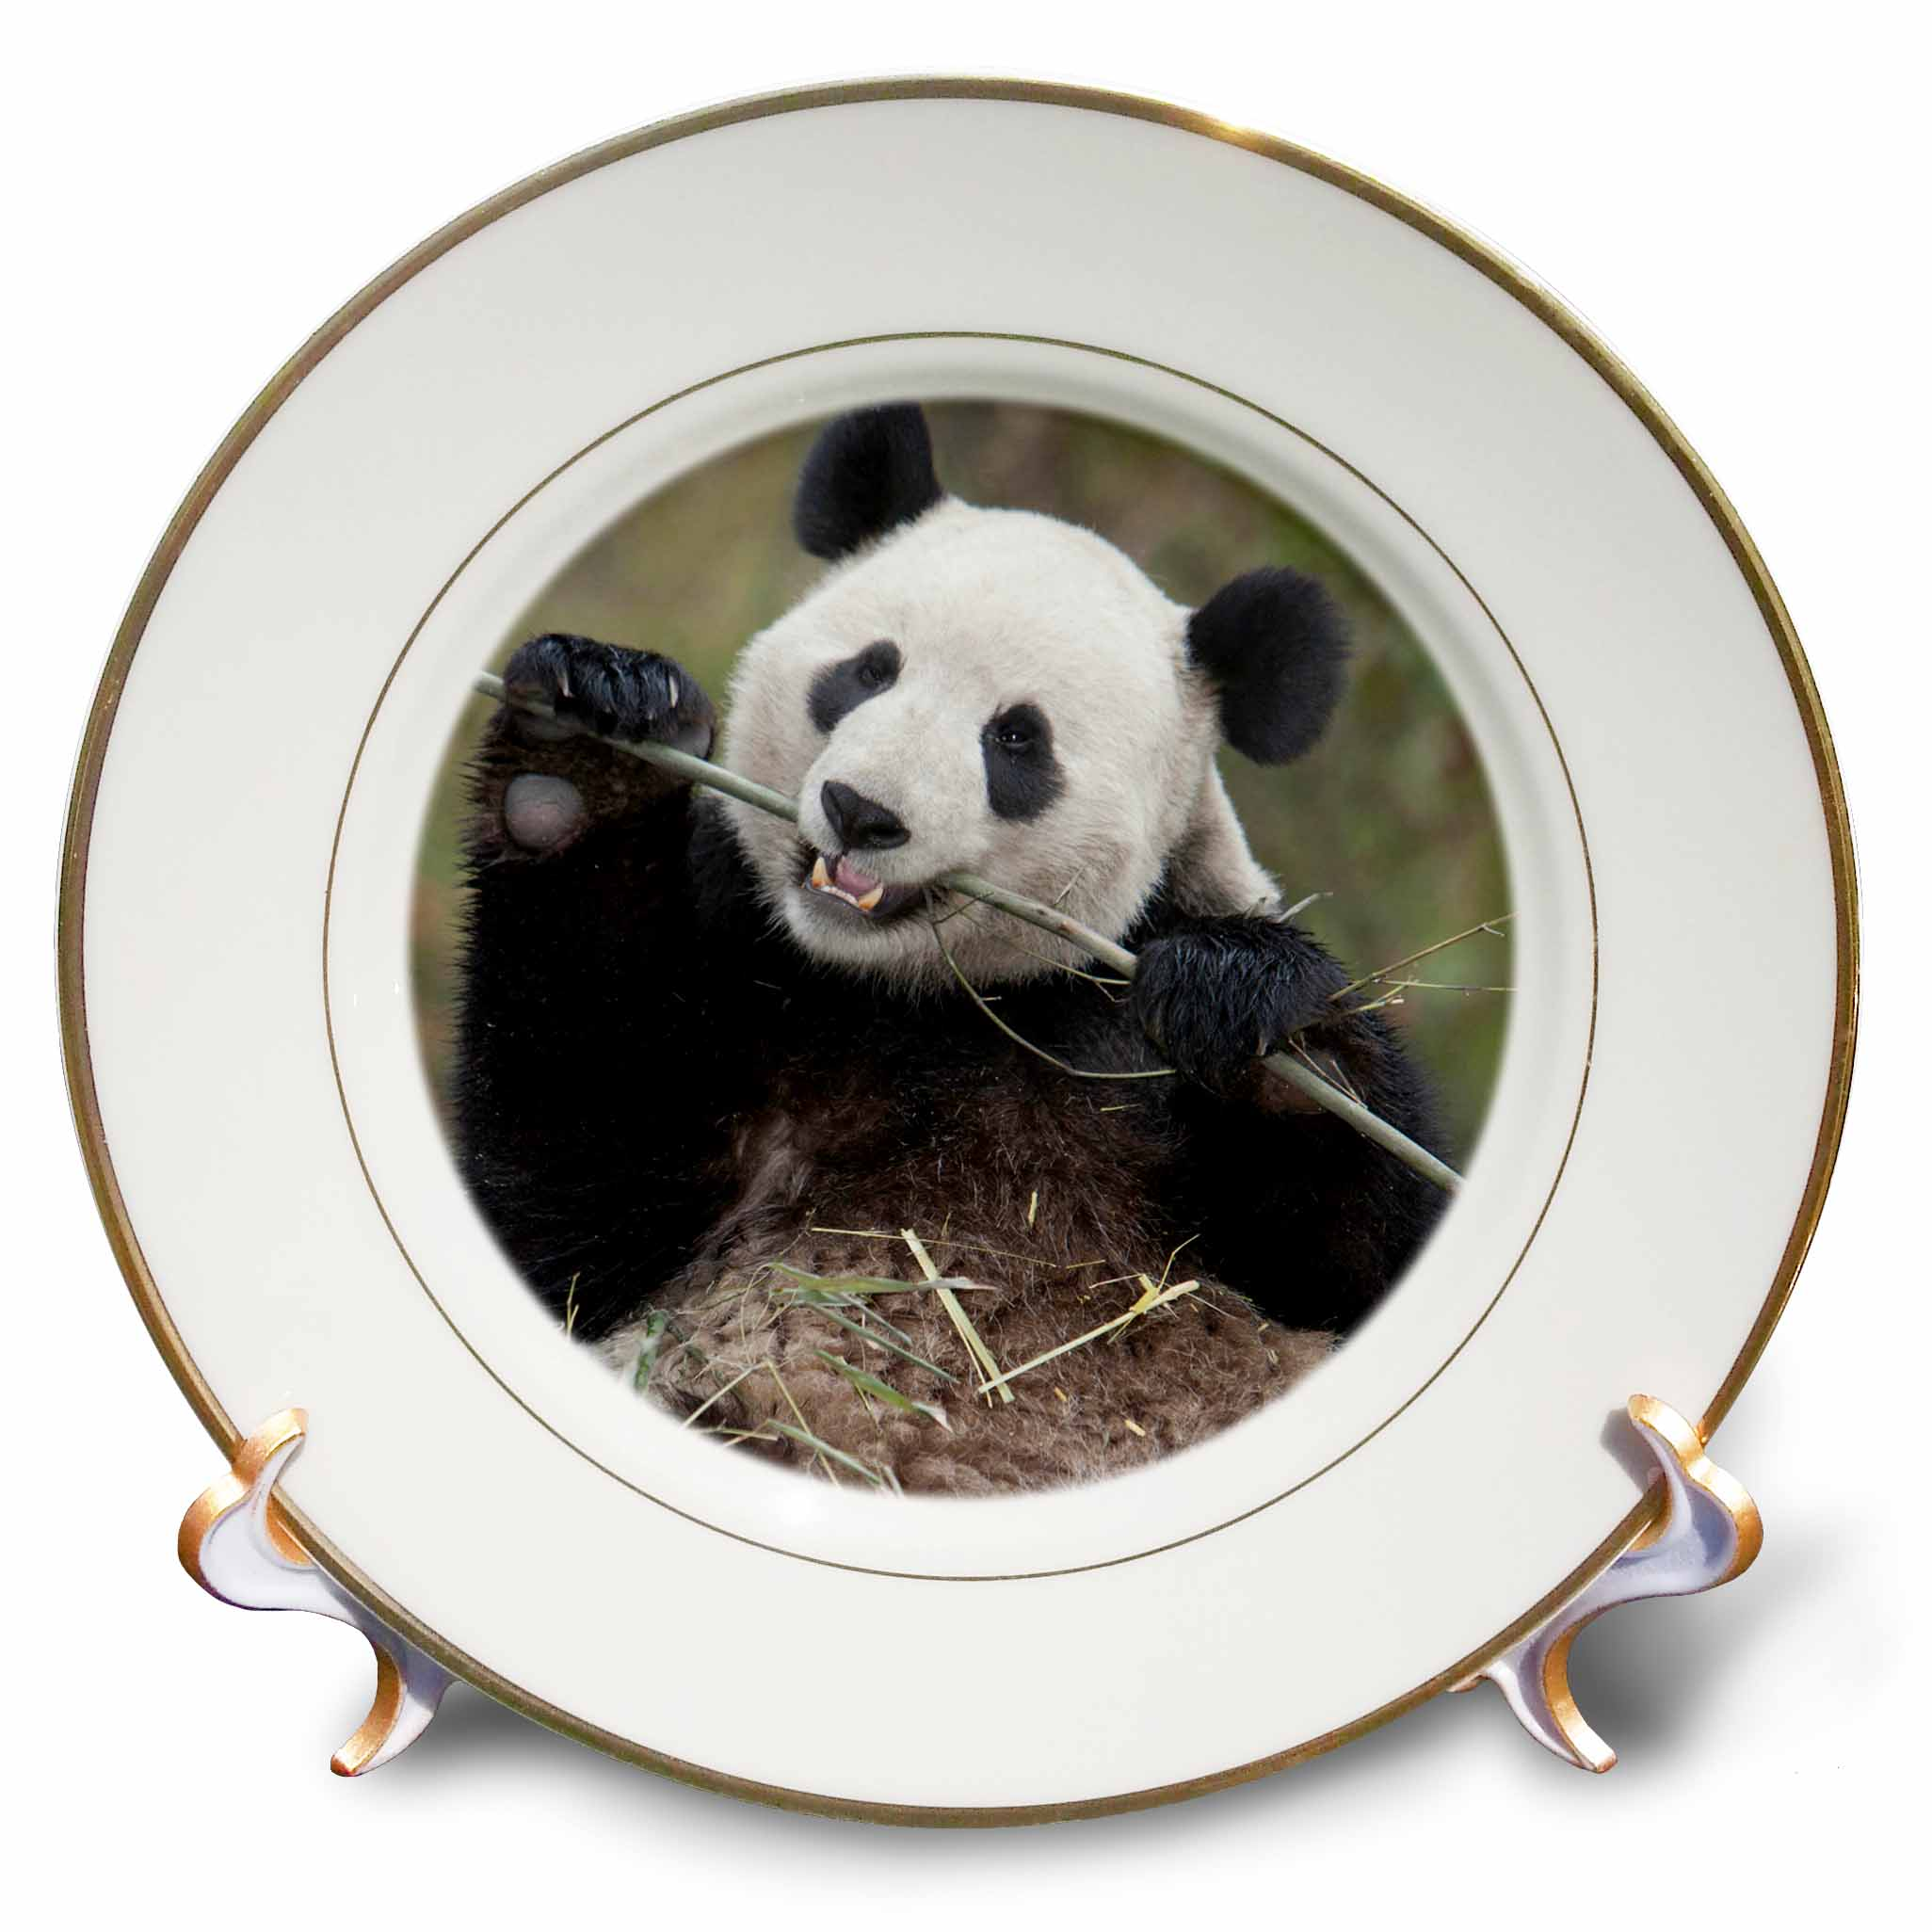 3dRose China, Wolong, Giant panda bear eating bamboo - AS07 AGA0009 - Alice Garland, Porcelain Plate, 8-inch